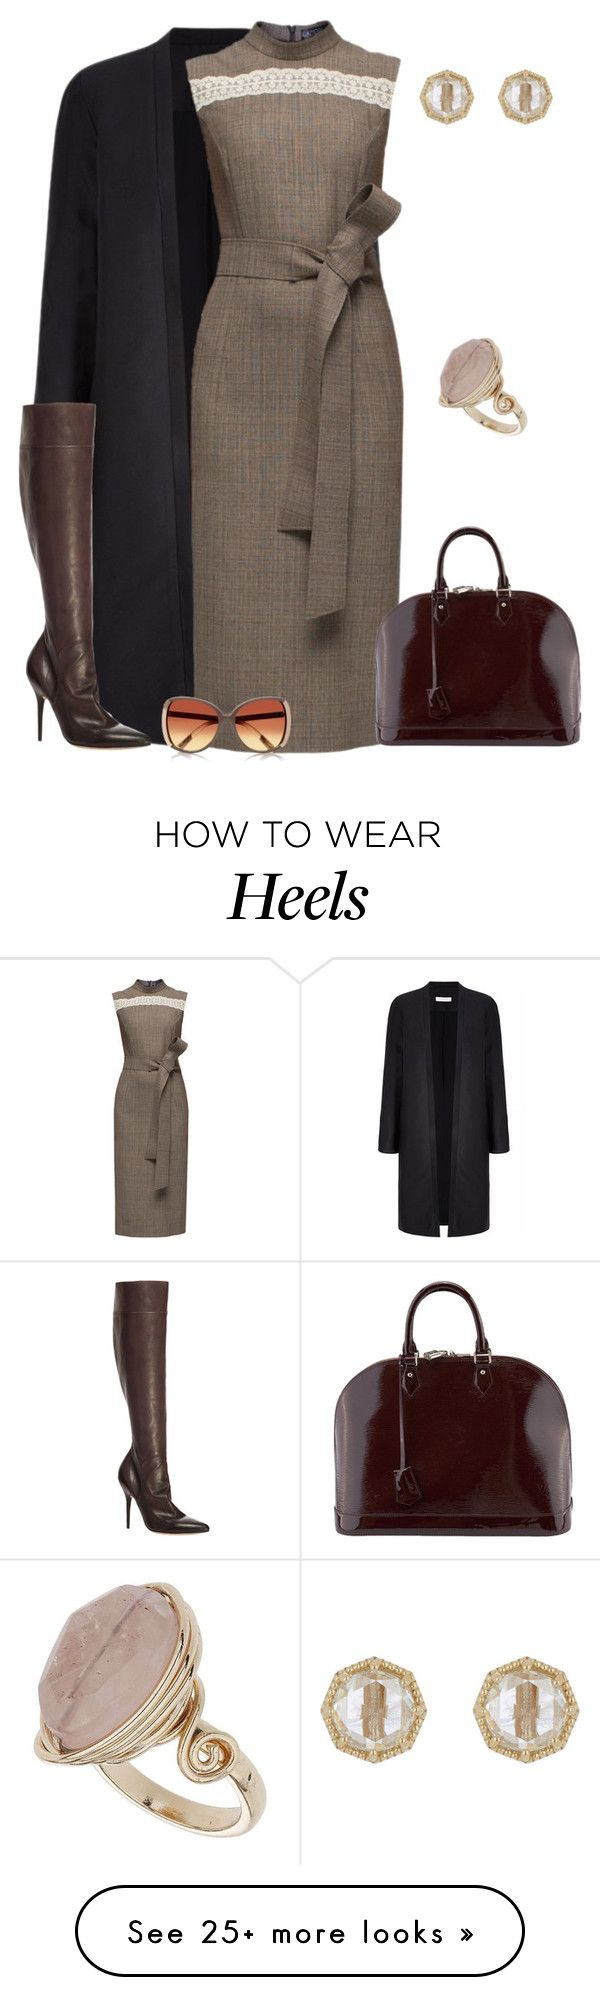 """""""outfit 3024"""" by natalyag on Polyvore featuring Lattori, Max Studio, Louis Vuitton, Grace Lee Designs, Topshop and River Island"""